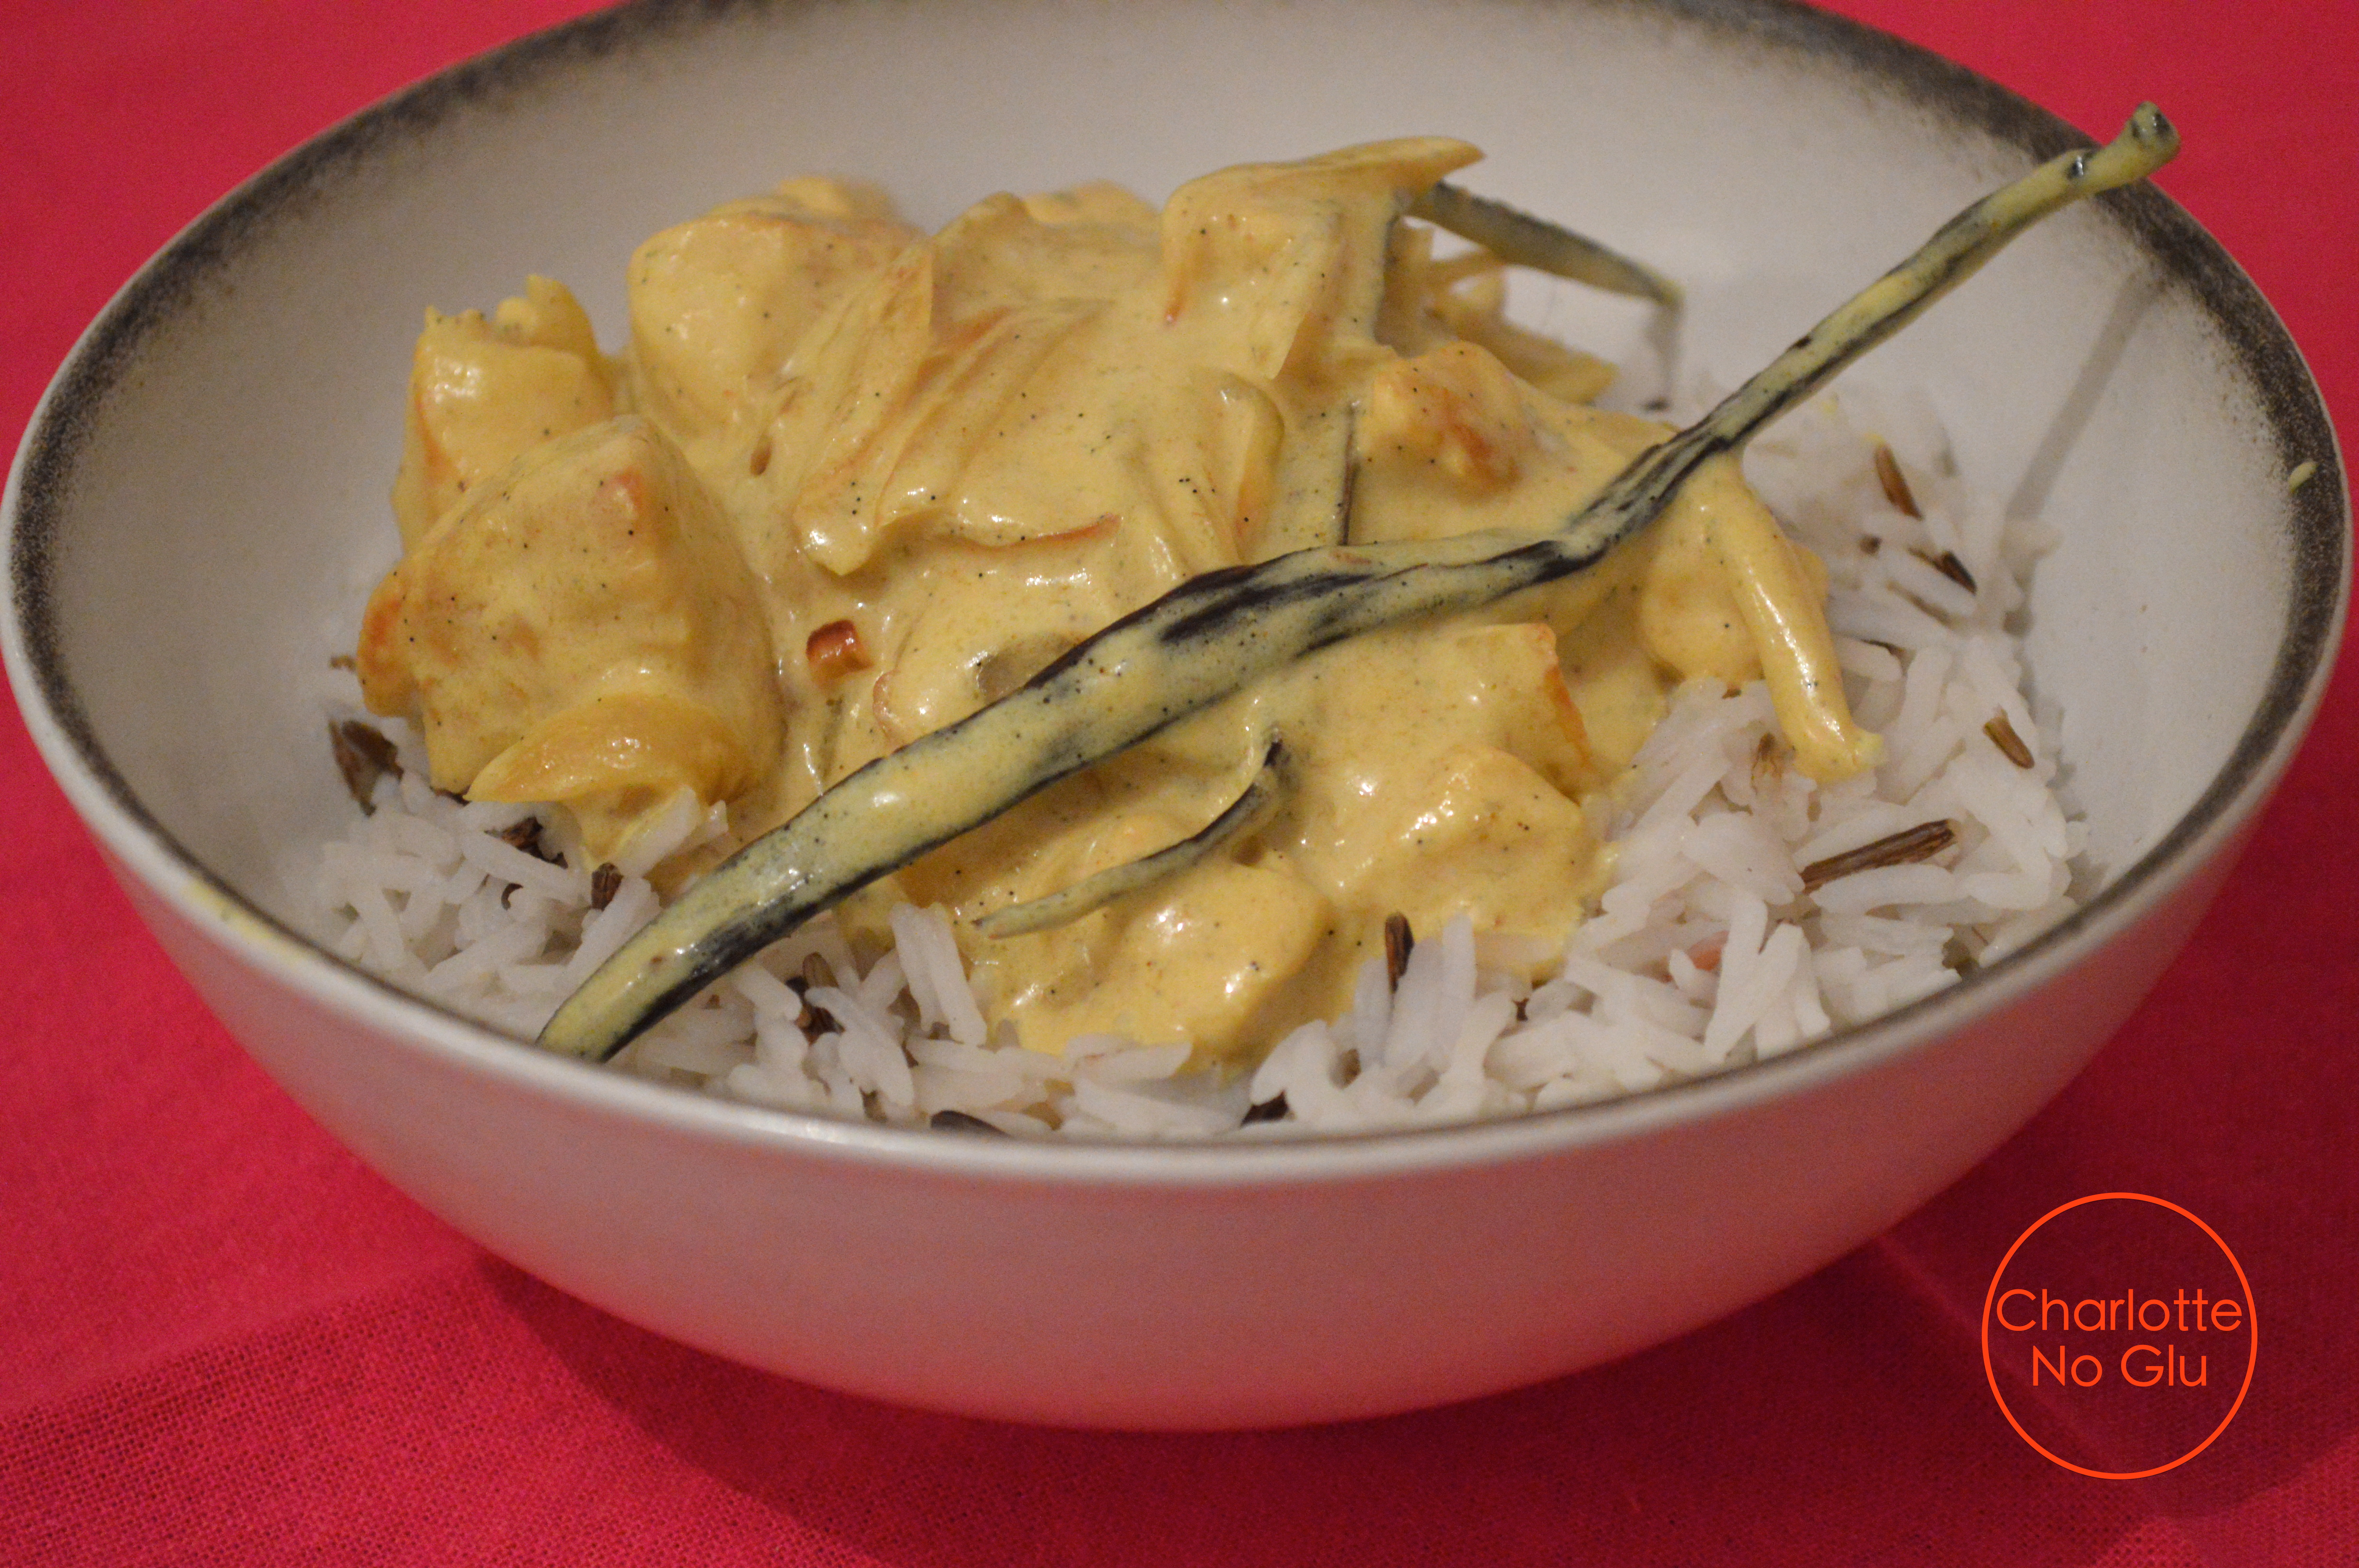 Poulet vanille coco coconut and vanilla chicken dis moi charlotte india - Recette laurent mariotte aujourd hui ...